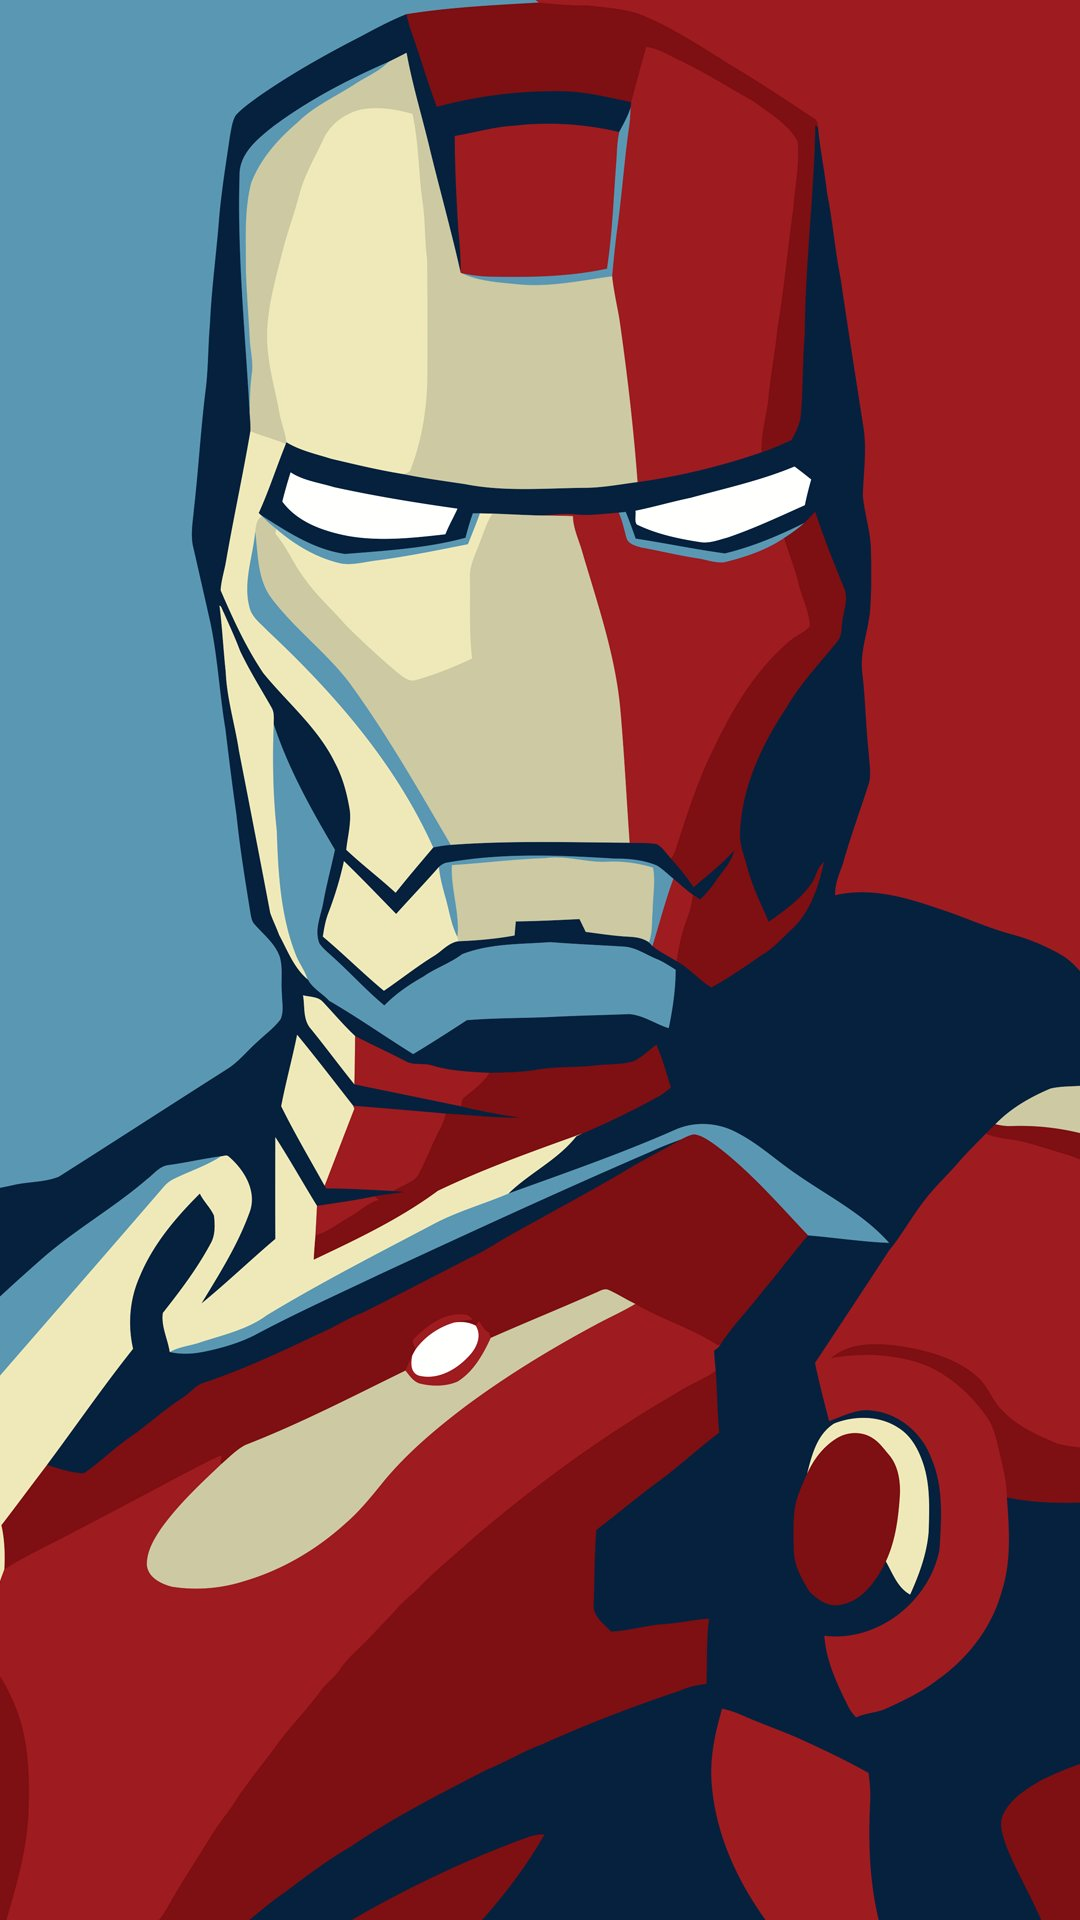 Cool Animated Phone Wallpapers 10 Hd Iron Man Iphone 6 Wallpapers The Nology